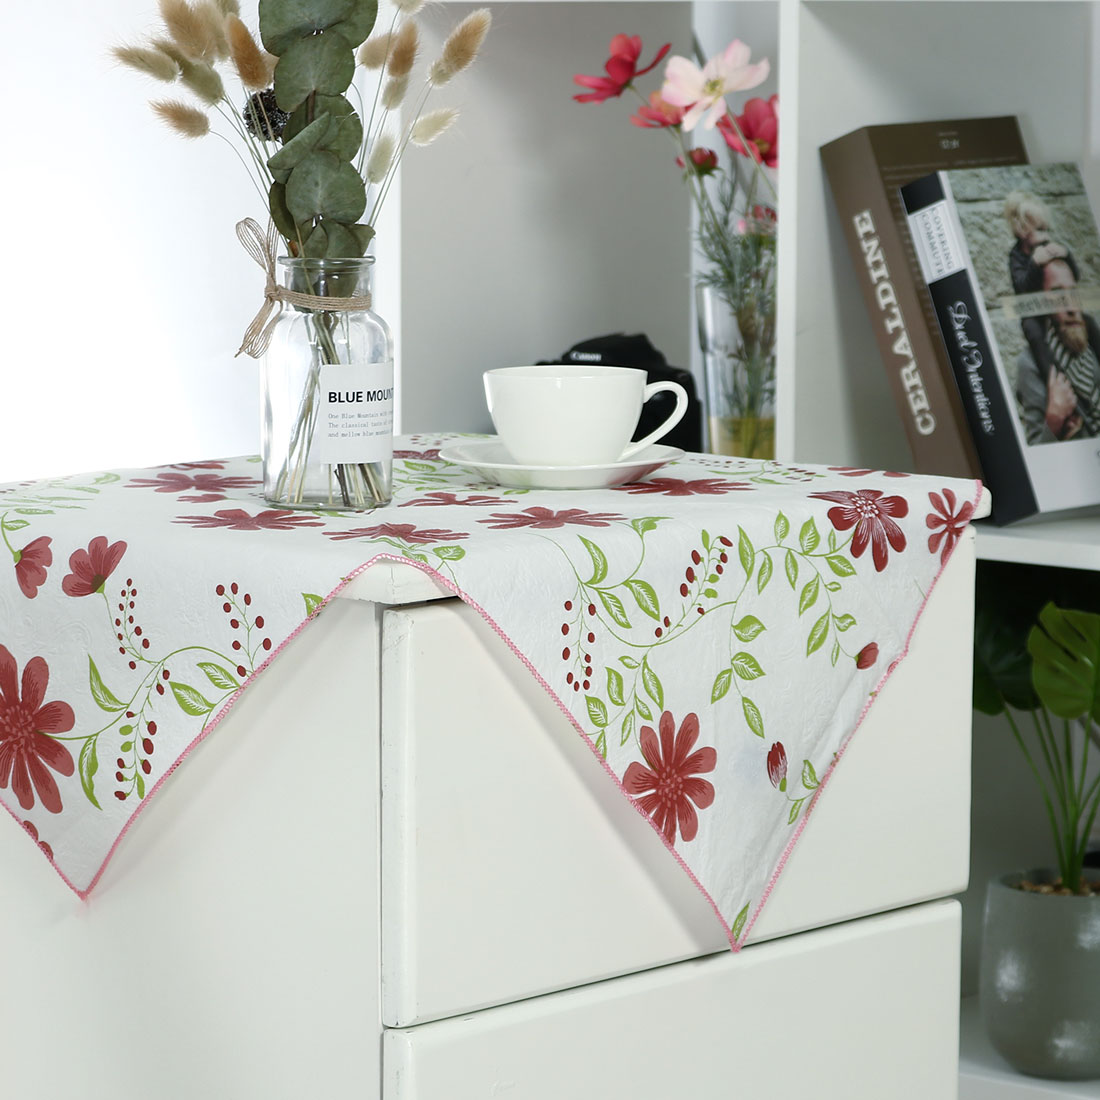 """Seamless Stain Water Resistant PVC Rectangular Tablecloth 24"""" x 24"""" Red Flower - image 6 of 8"""